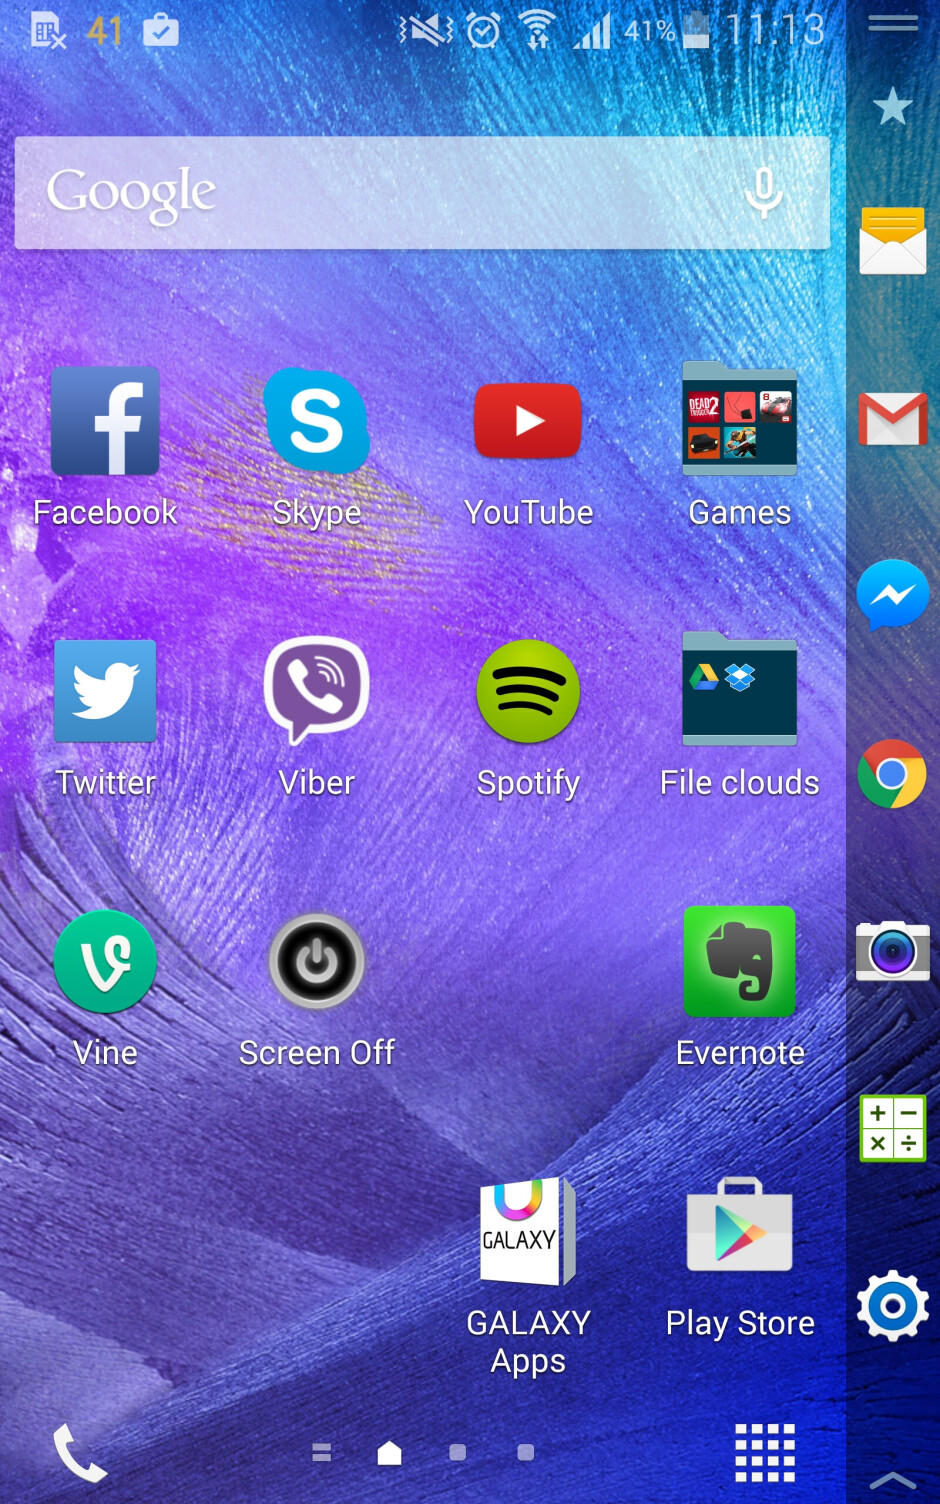 Power key too high? Here's how to comfortably switch off and lock the Samsung Galaxy Note Edge from its Edge display